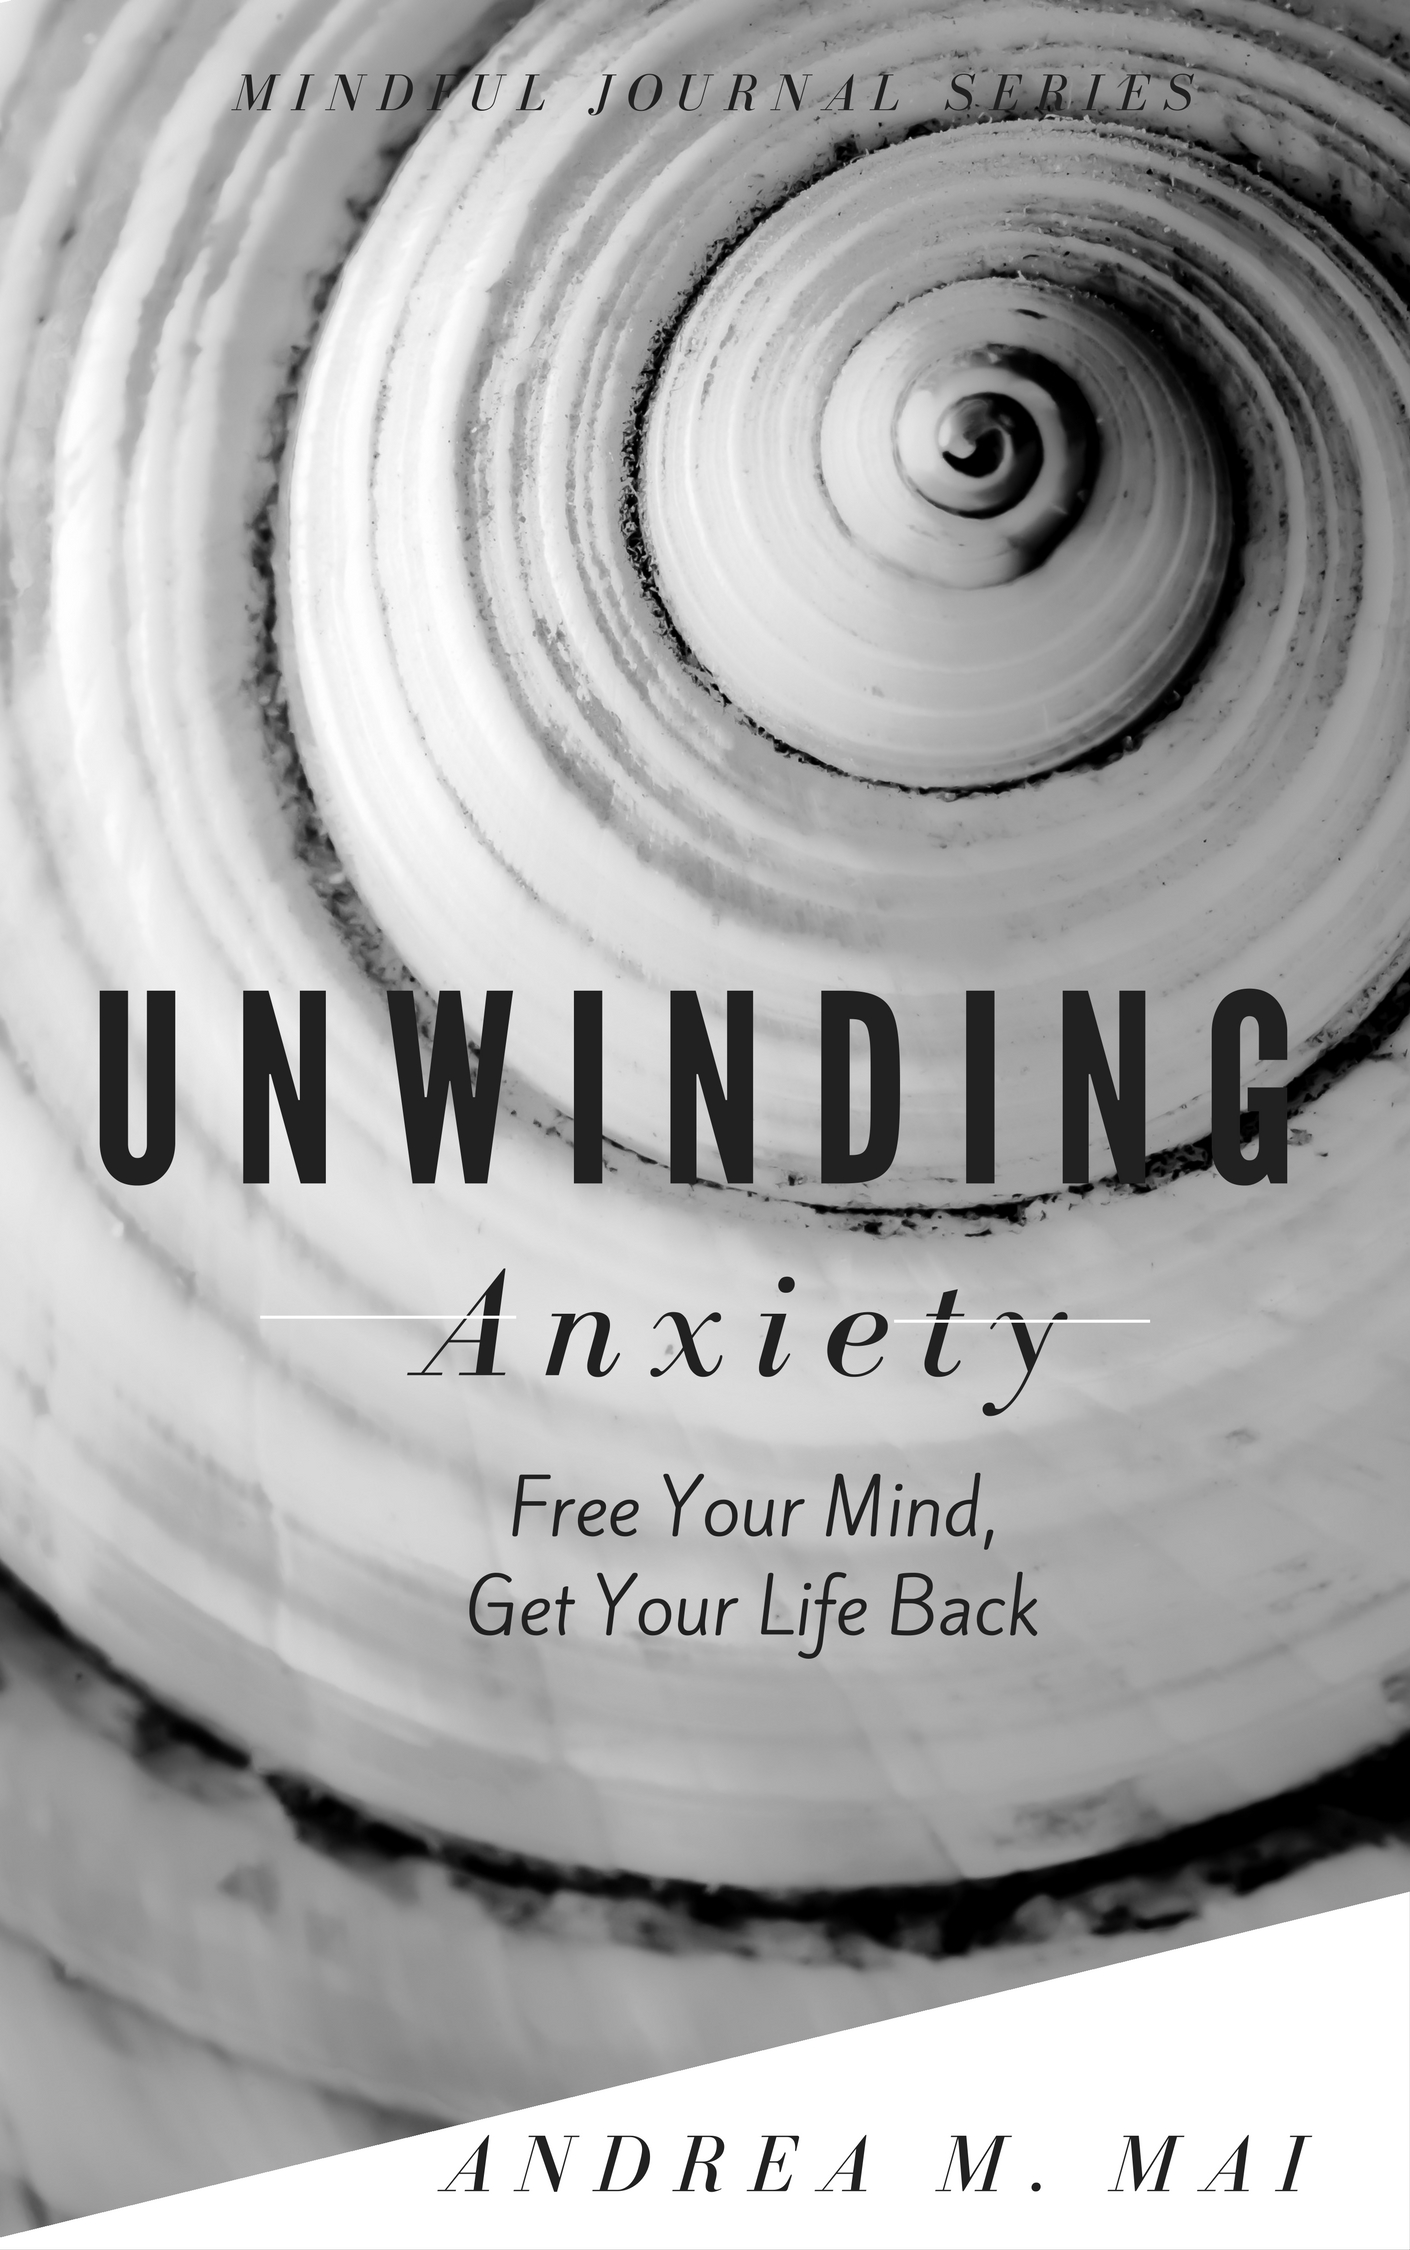 Maintaining a Life Free From Anxiety